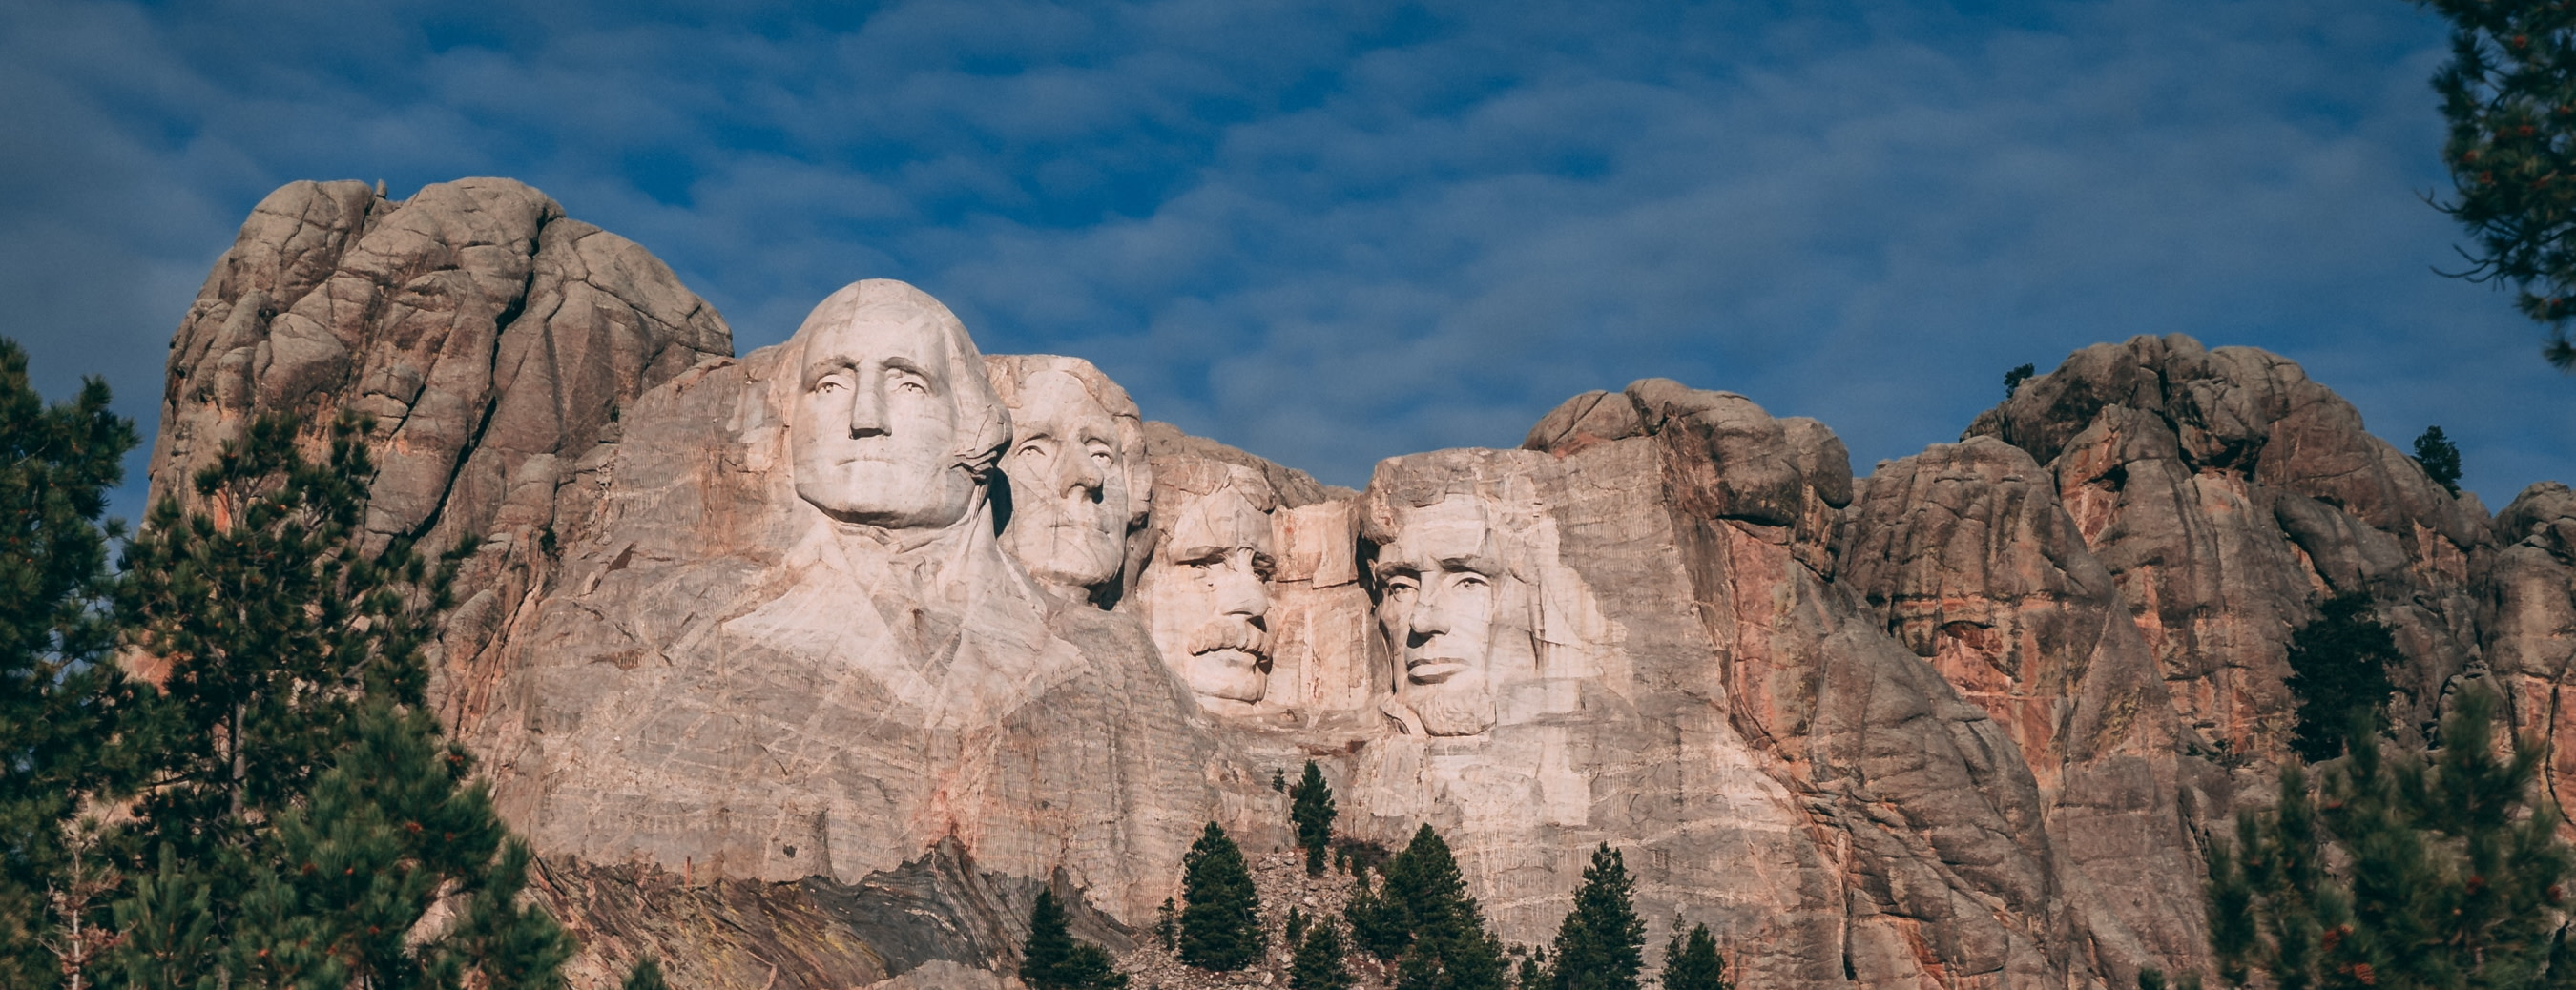 Mount Rushmore - Highlighting upcoming election